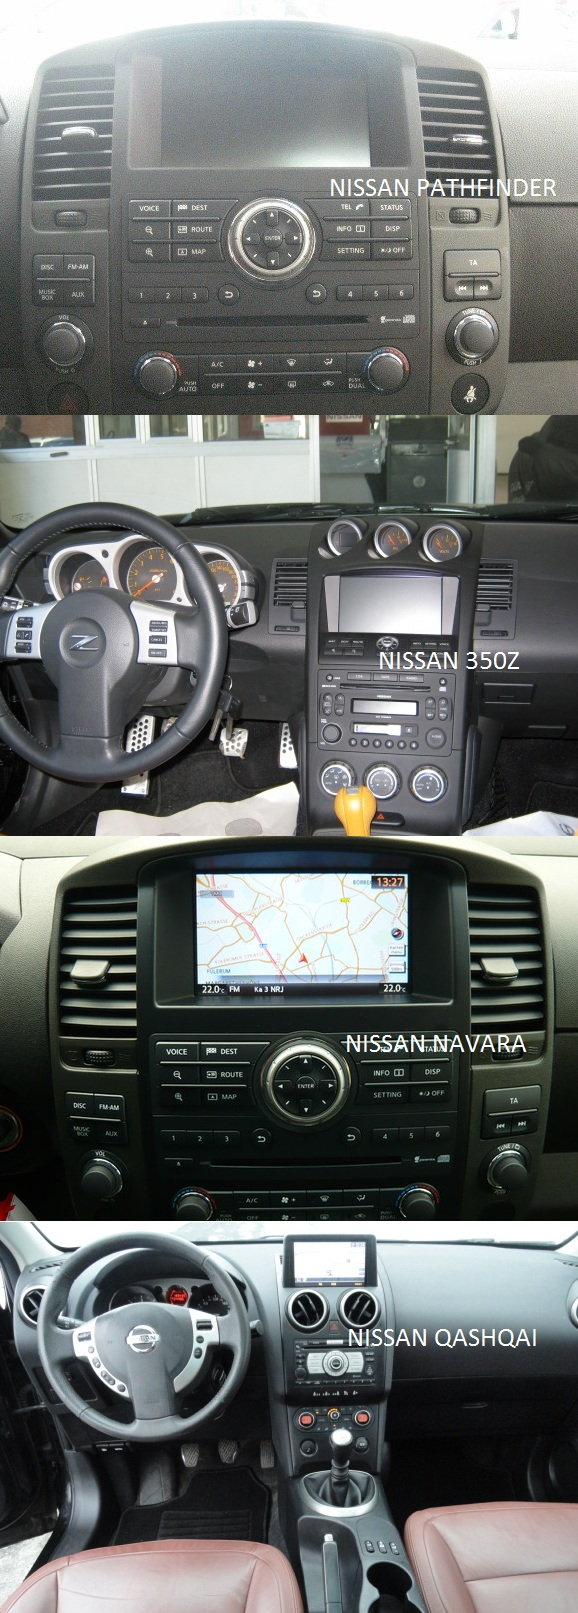 comaptibilitate interfata video nissan rgb